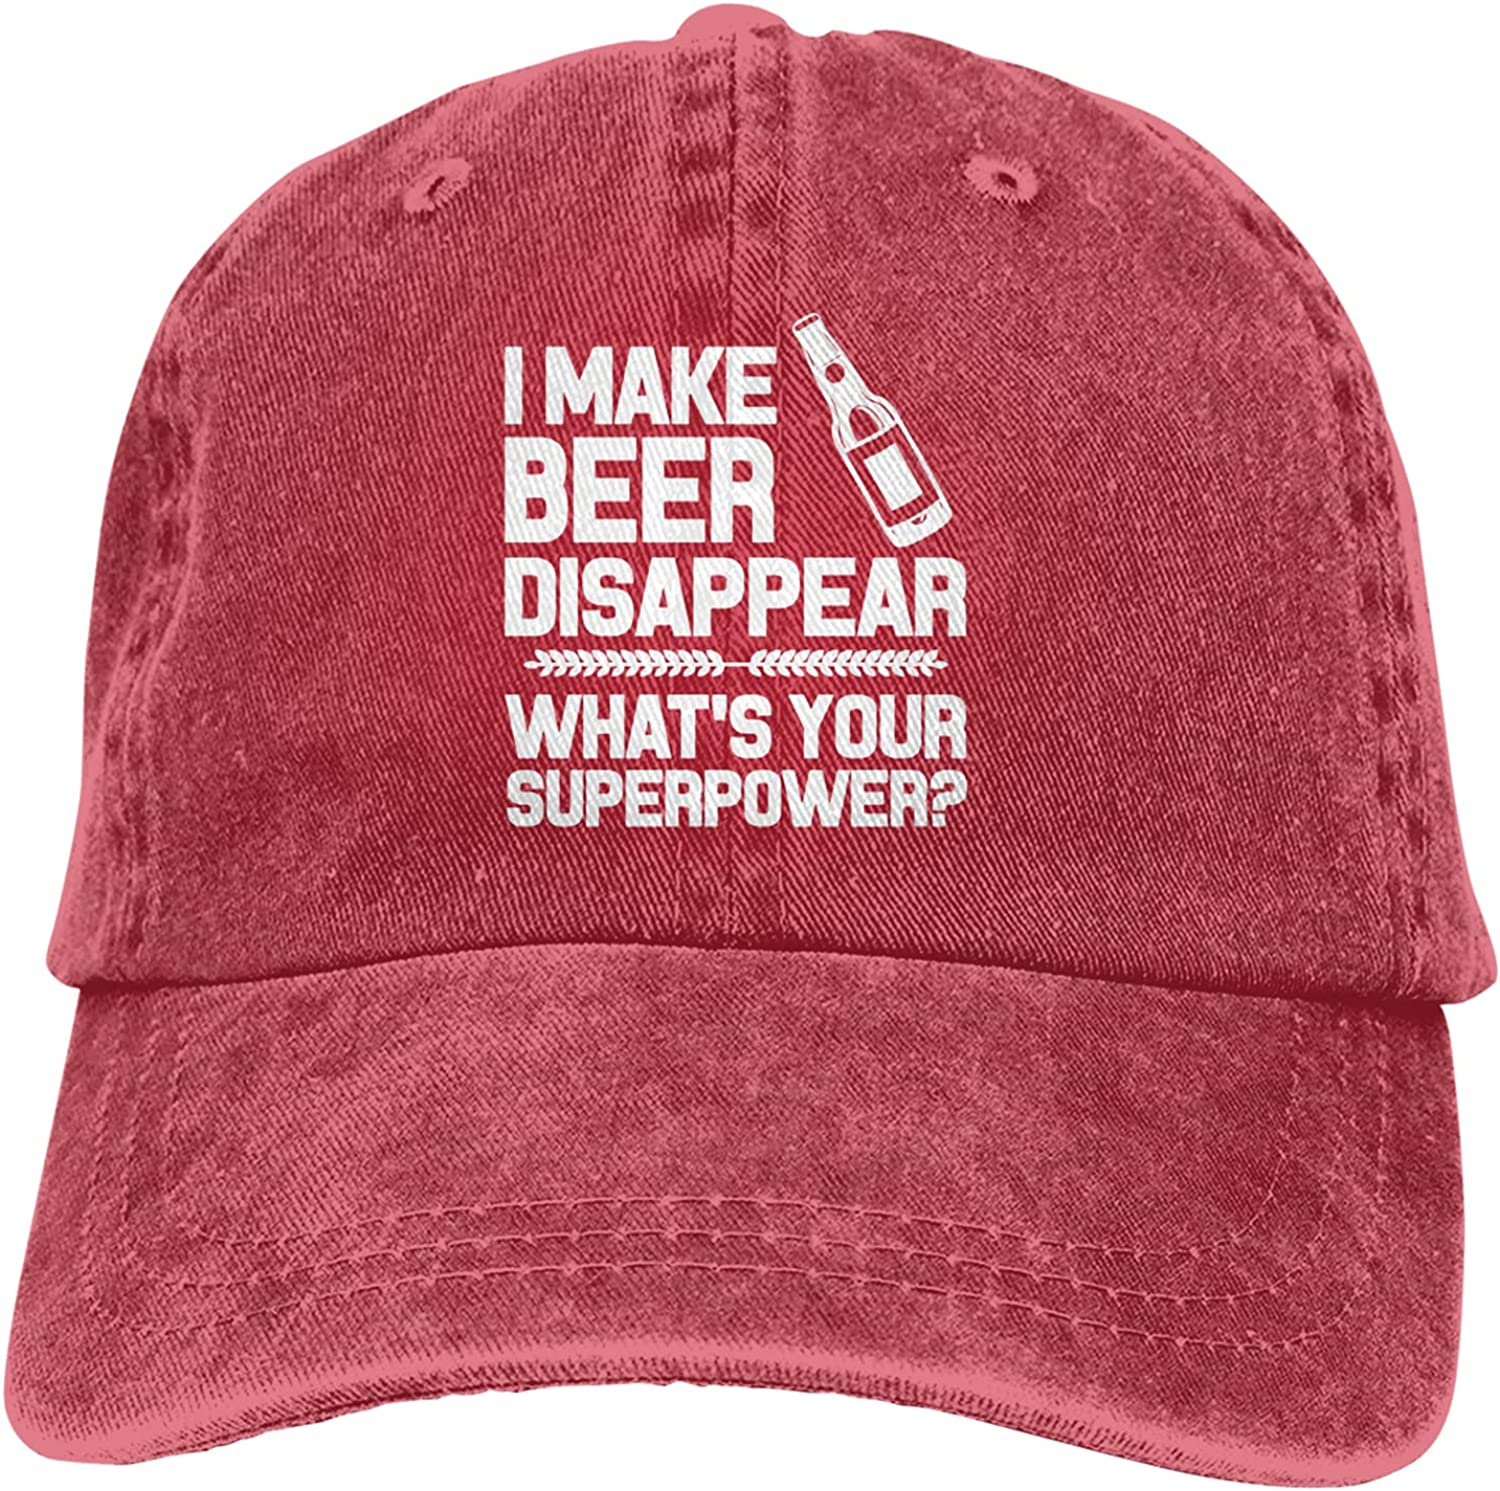 I Make Beer Disappear shipfree What's Your Women's Mo Superpower Cap Man Fashionable